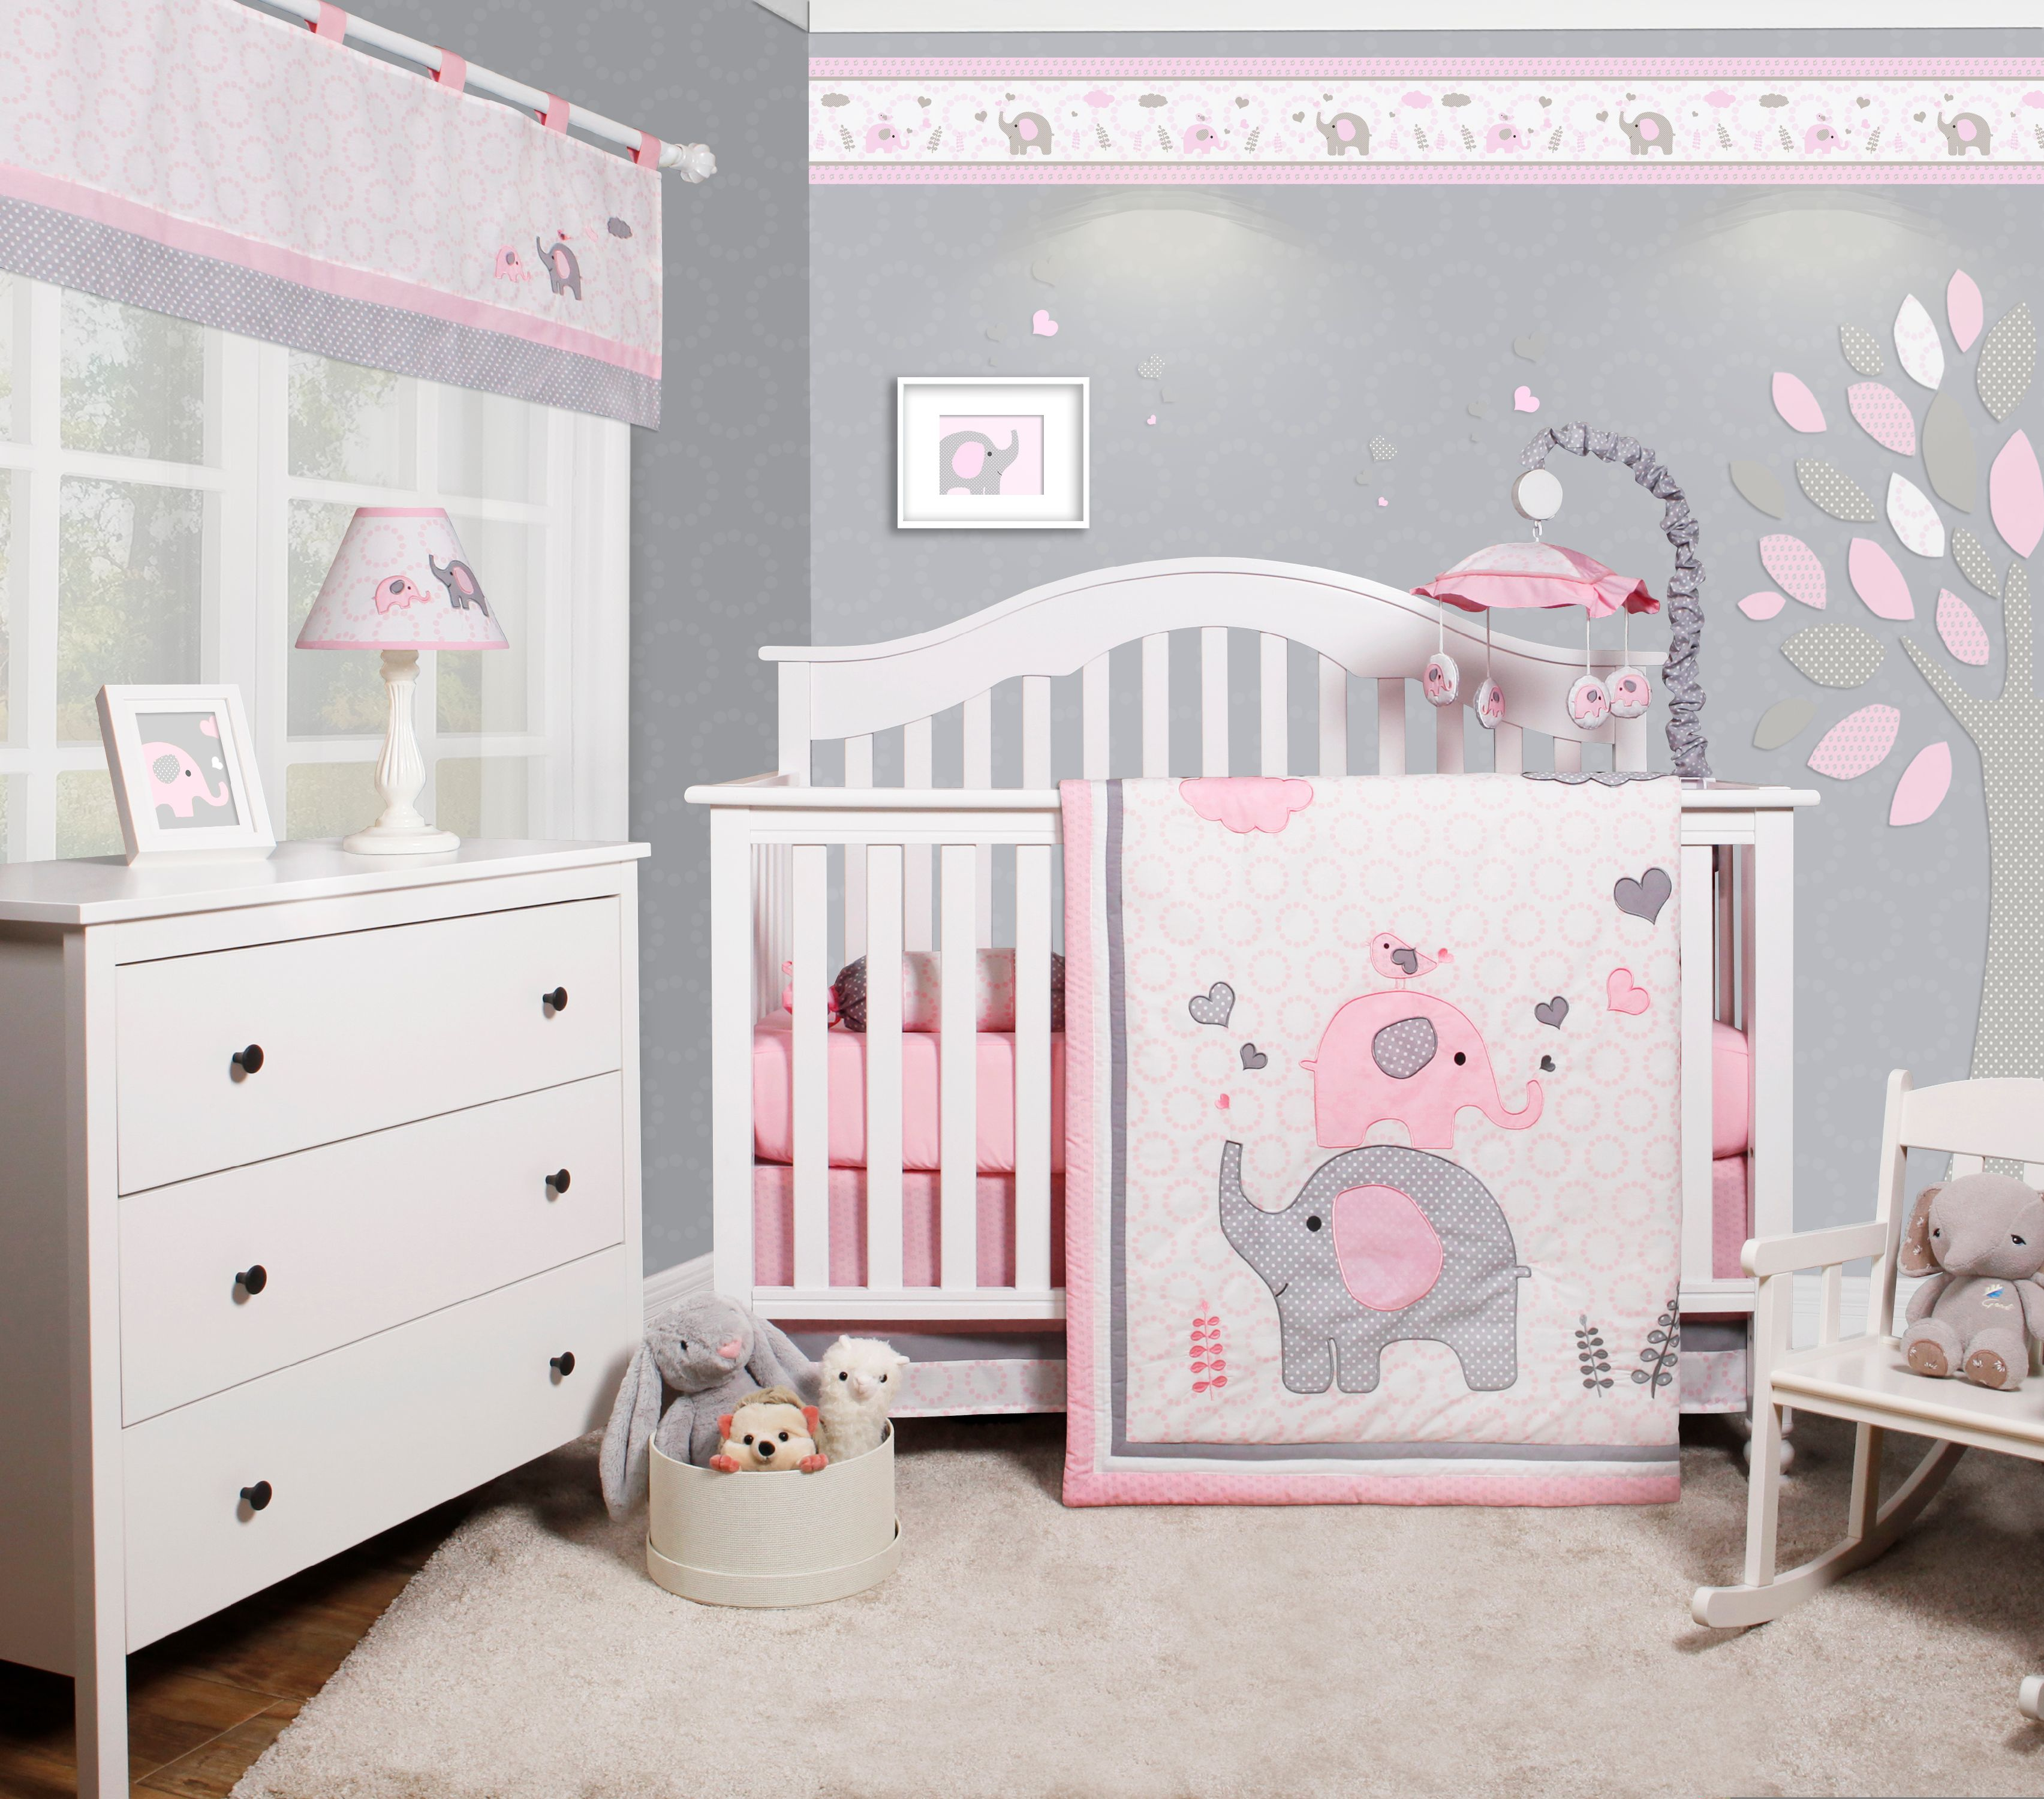 Baby Girl Nursery Themes Product Image OptimaBaby Pink Grey Elephant 6 Piece Baby Girl Nursery Crib  Bedding Set